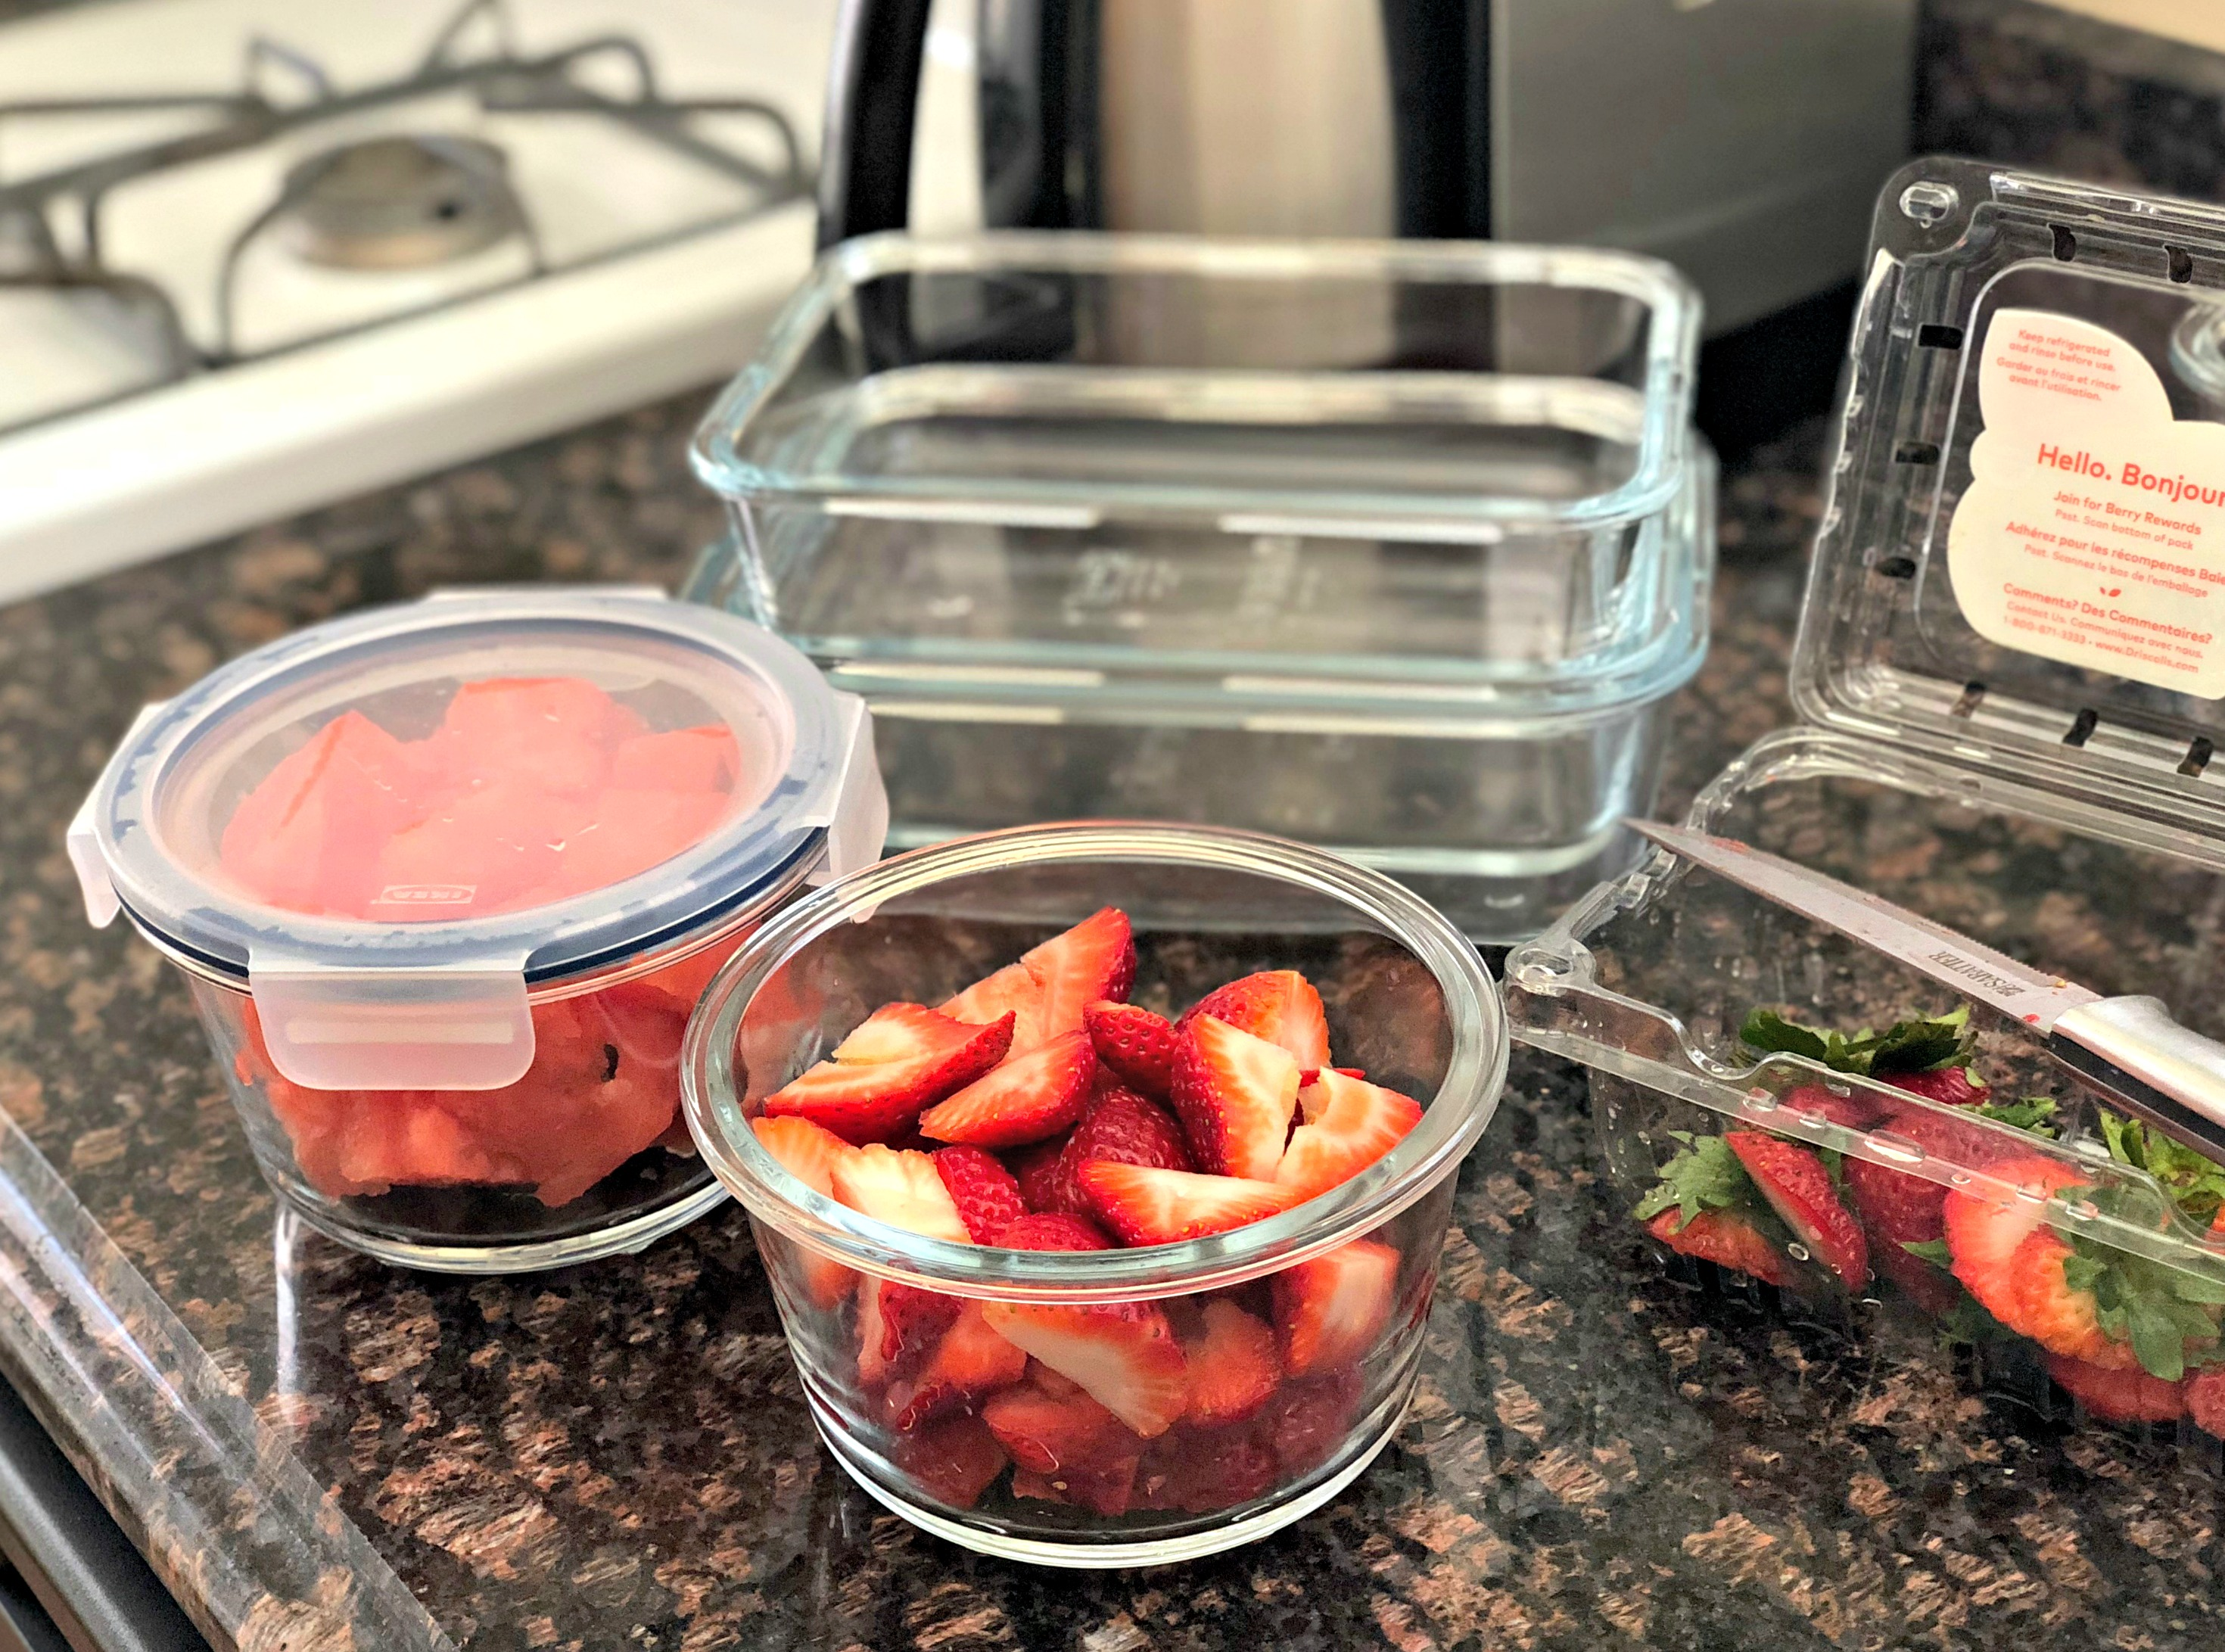 IKEA glass food containers